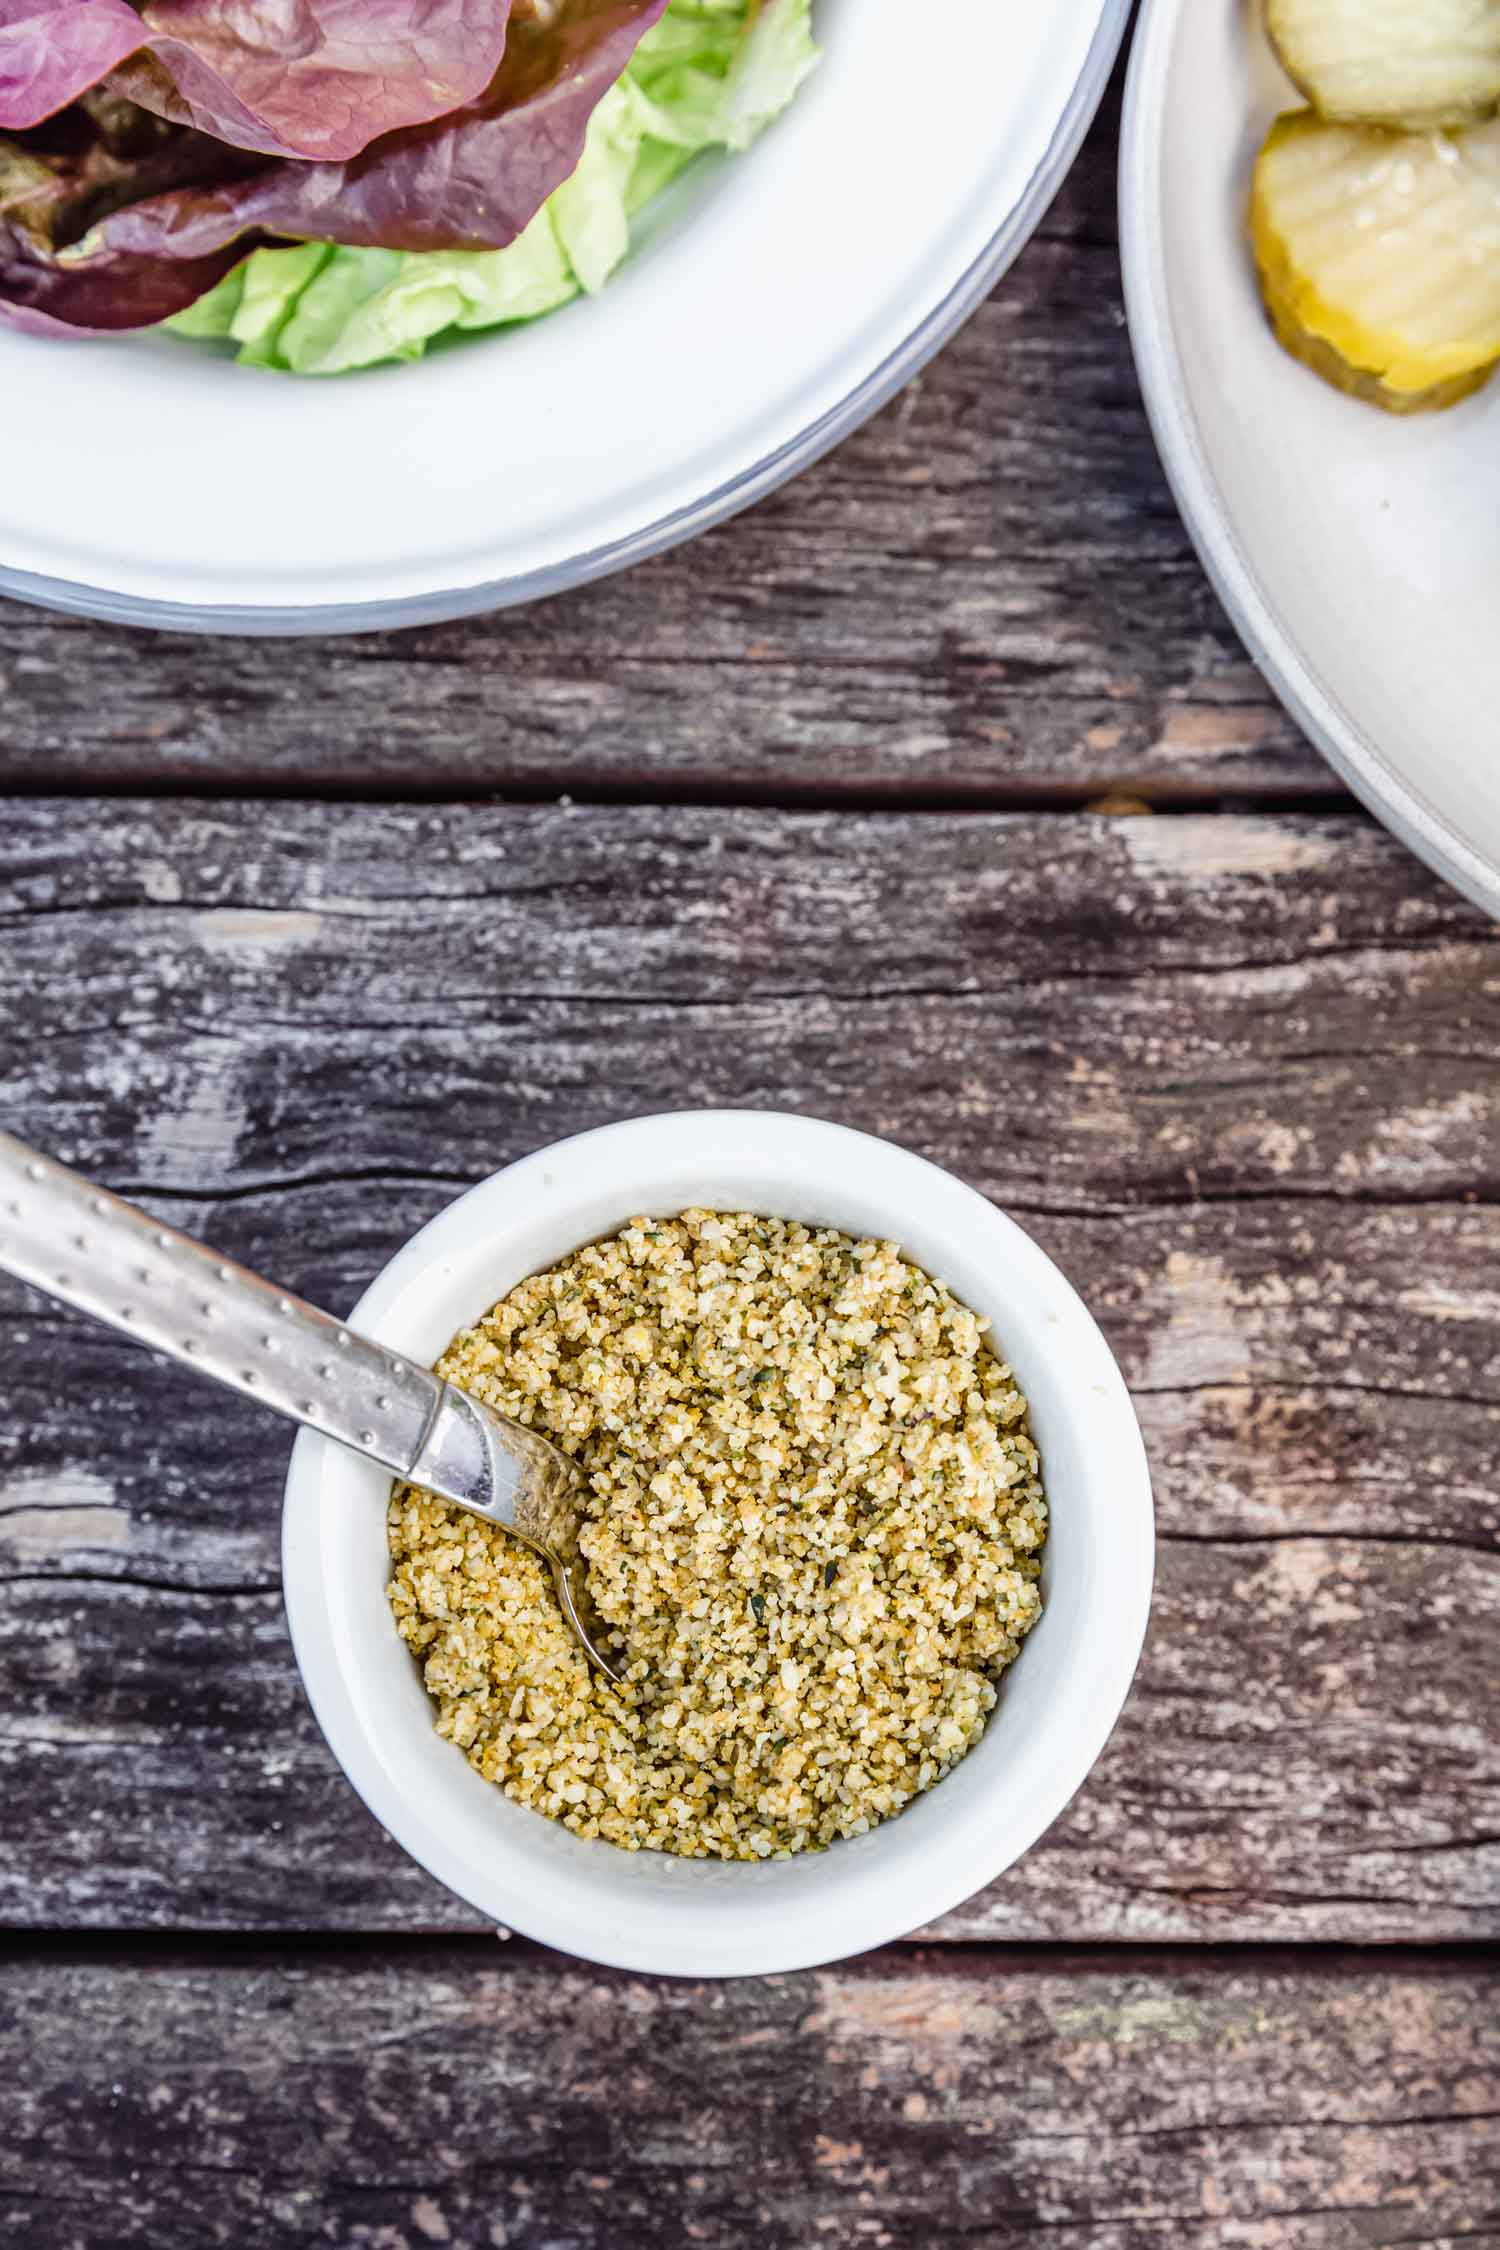 Hemp Parmesan from  Epic Vegan: Wild and Over-the-Top Plant-Based Recipes  by Dustin Harder. #cookbook #cookbookrecipe #veganrecipe #vegancheese #veganparmesan #hempseed #nutfreerecipe #vegancookbook